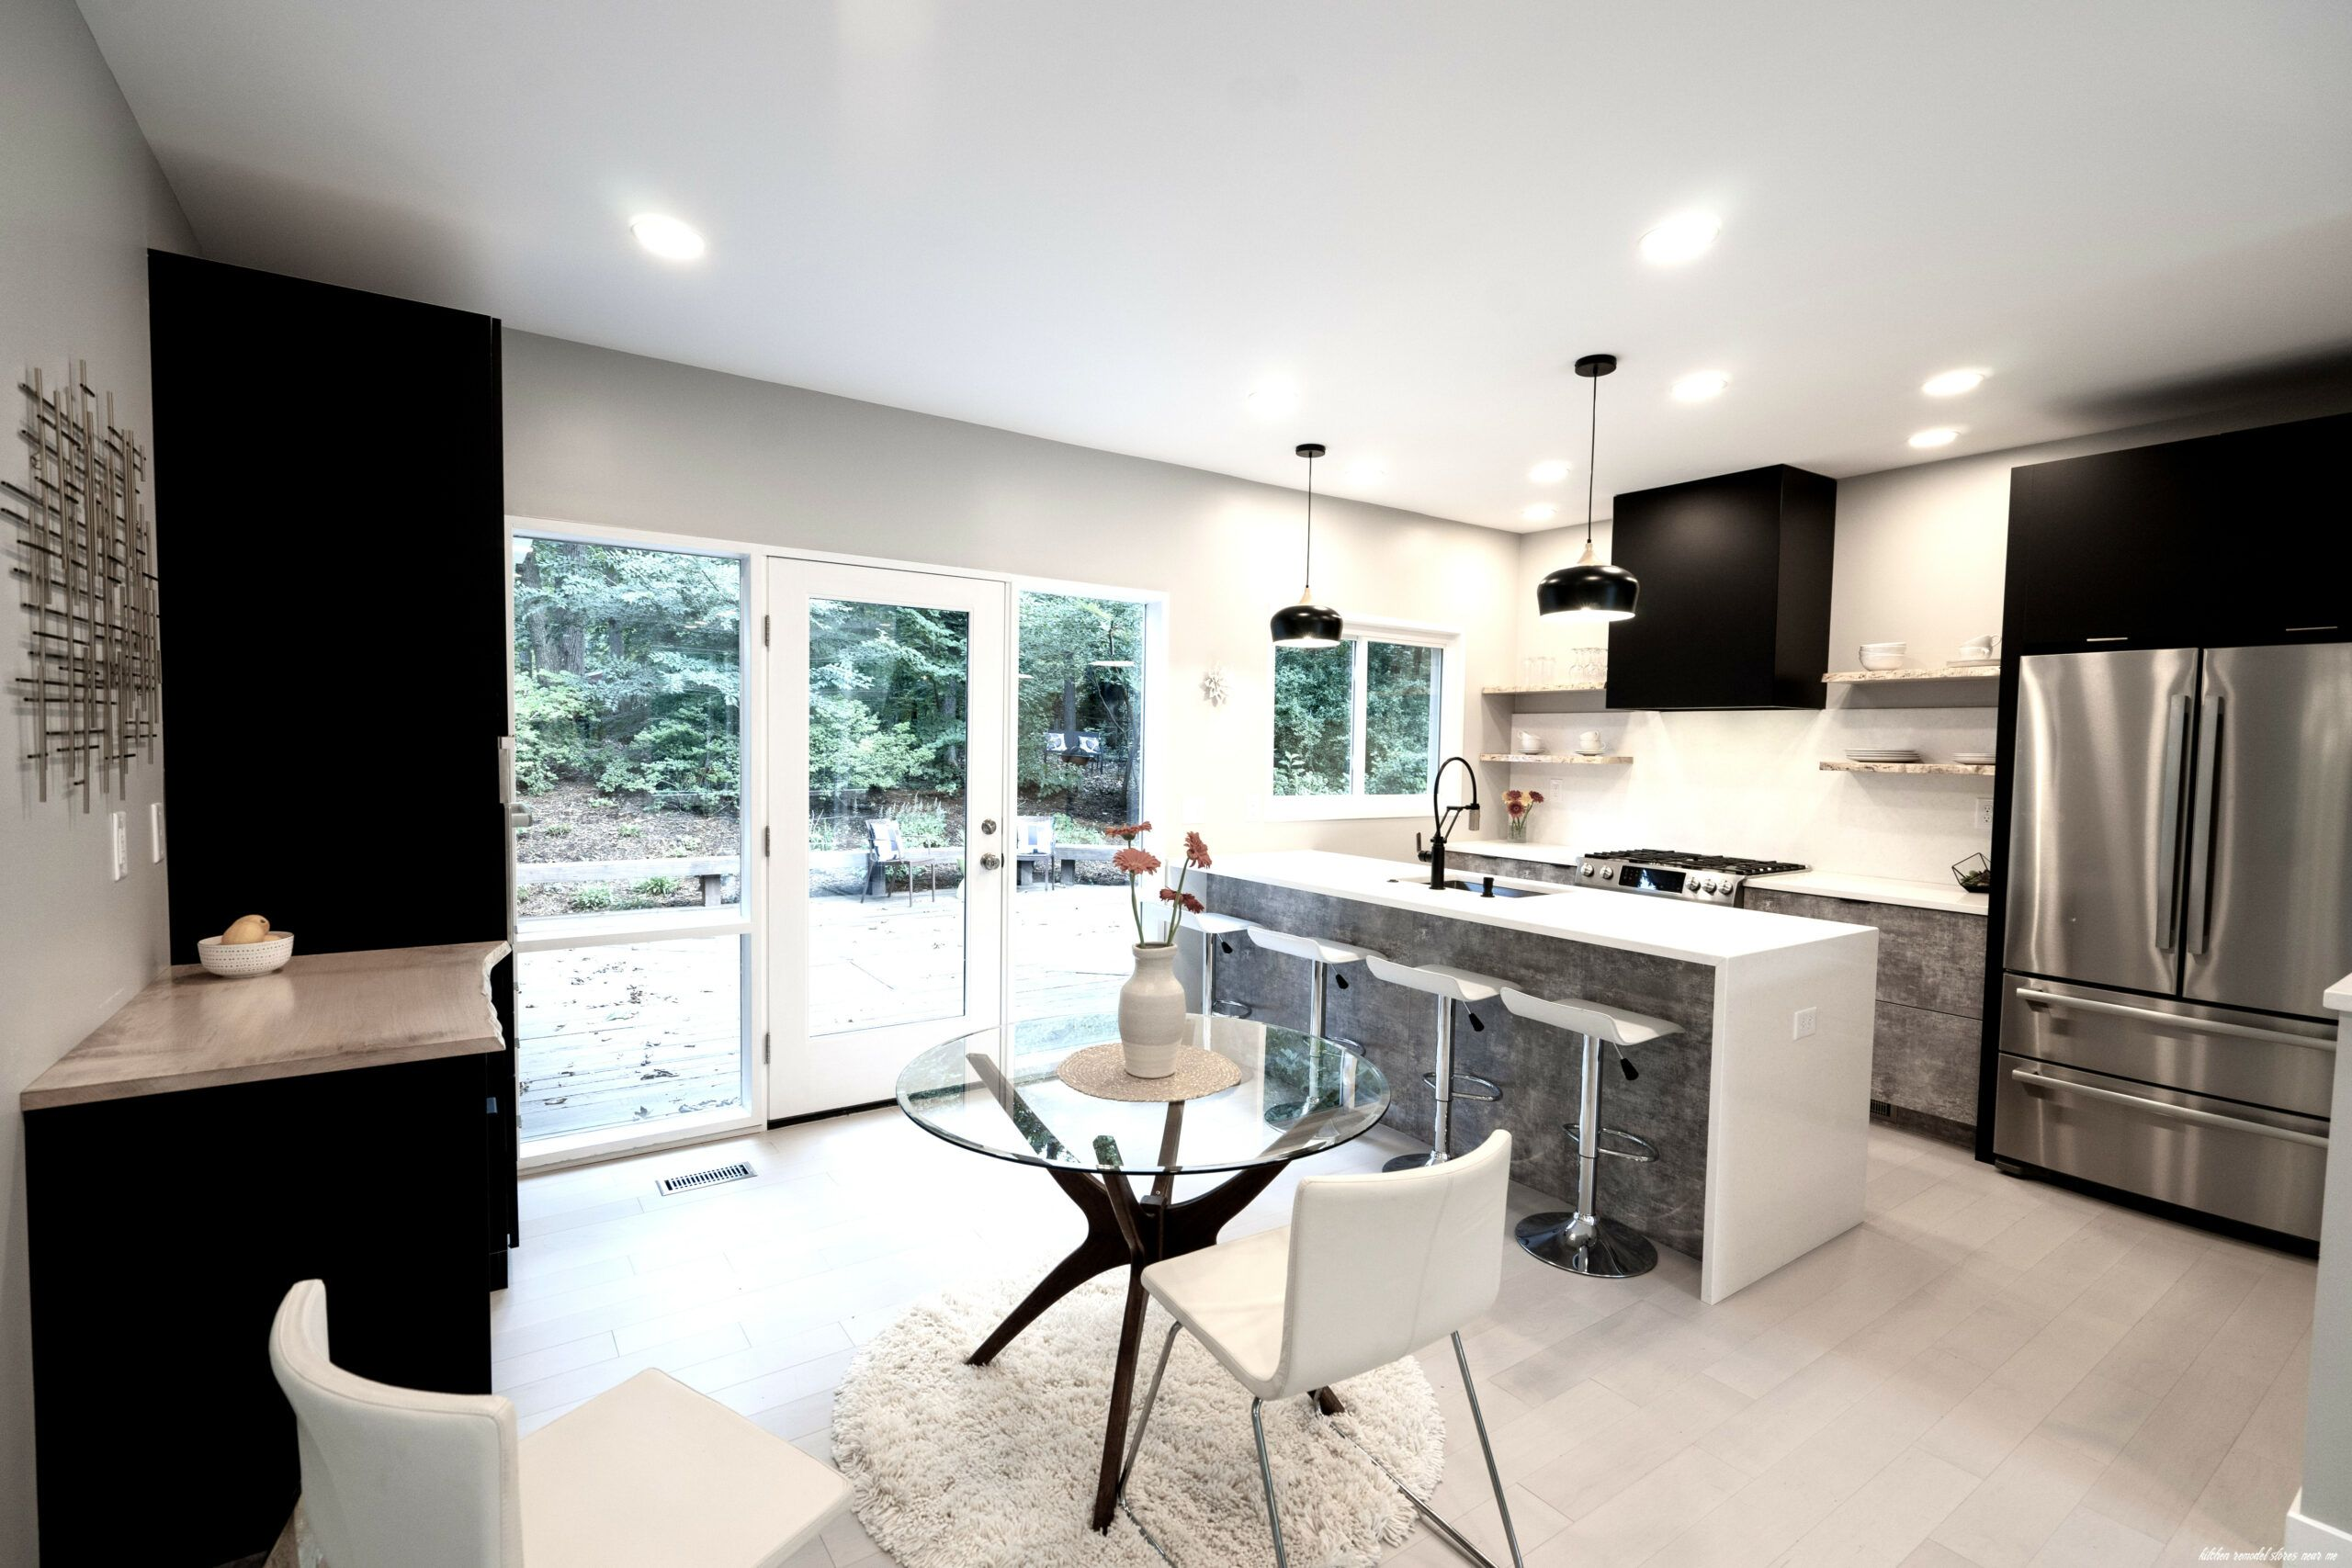 Kitchen Remodel Stores Near Me in 2020 Country kitchen